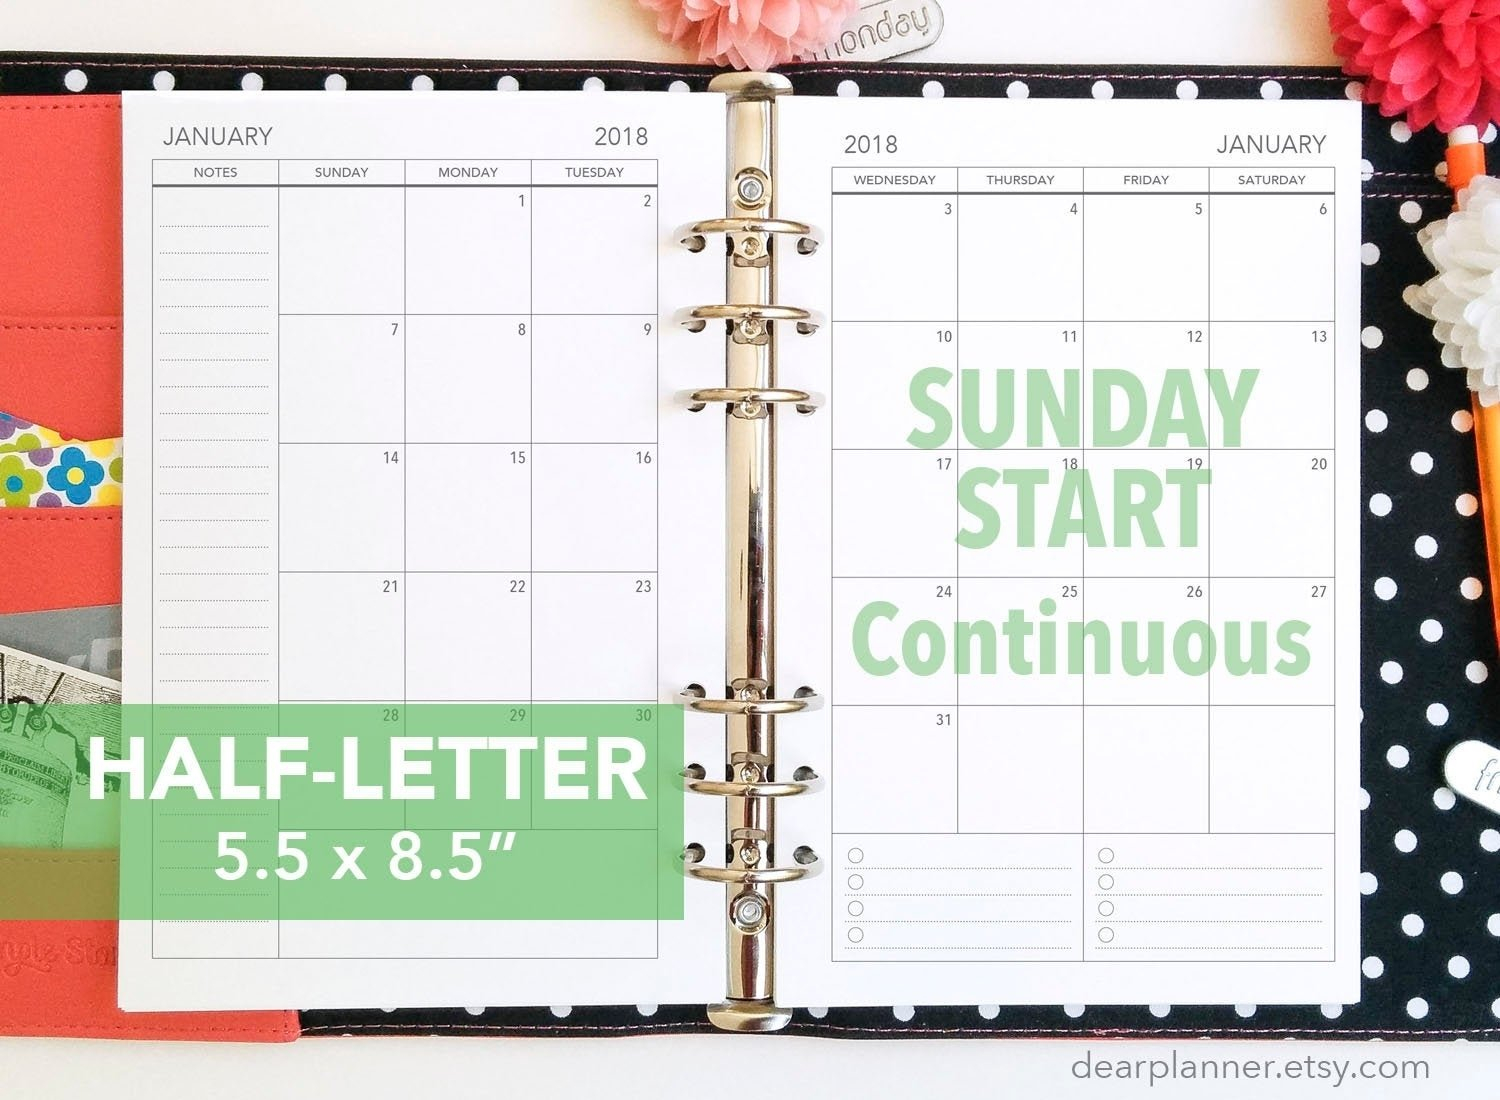 Blank 2 Page 5.5X8.5 Free Printable Calander Pages | Monthly Show Me Monthly Calendars With Agenda Pages That Are 5.5X8.5